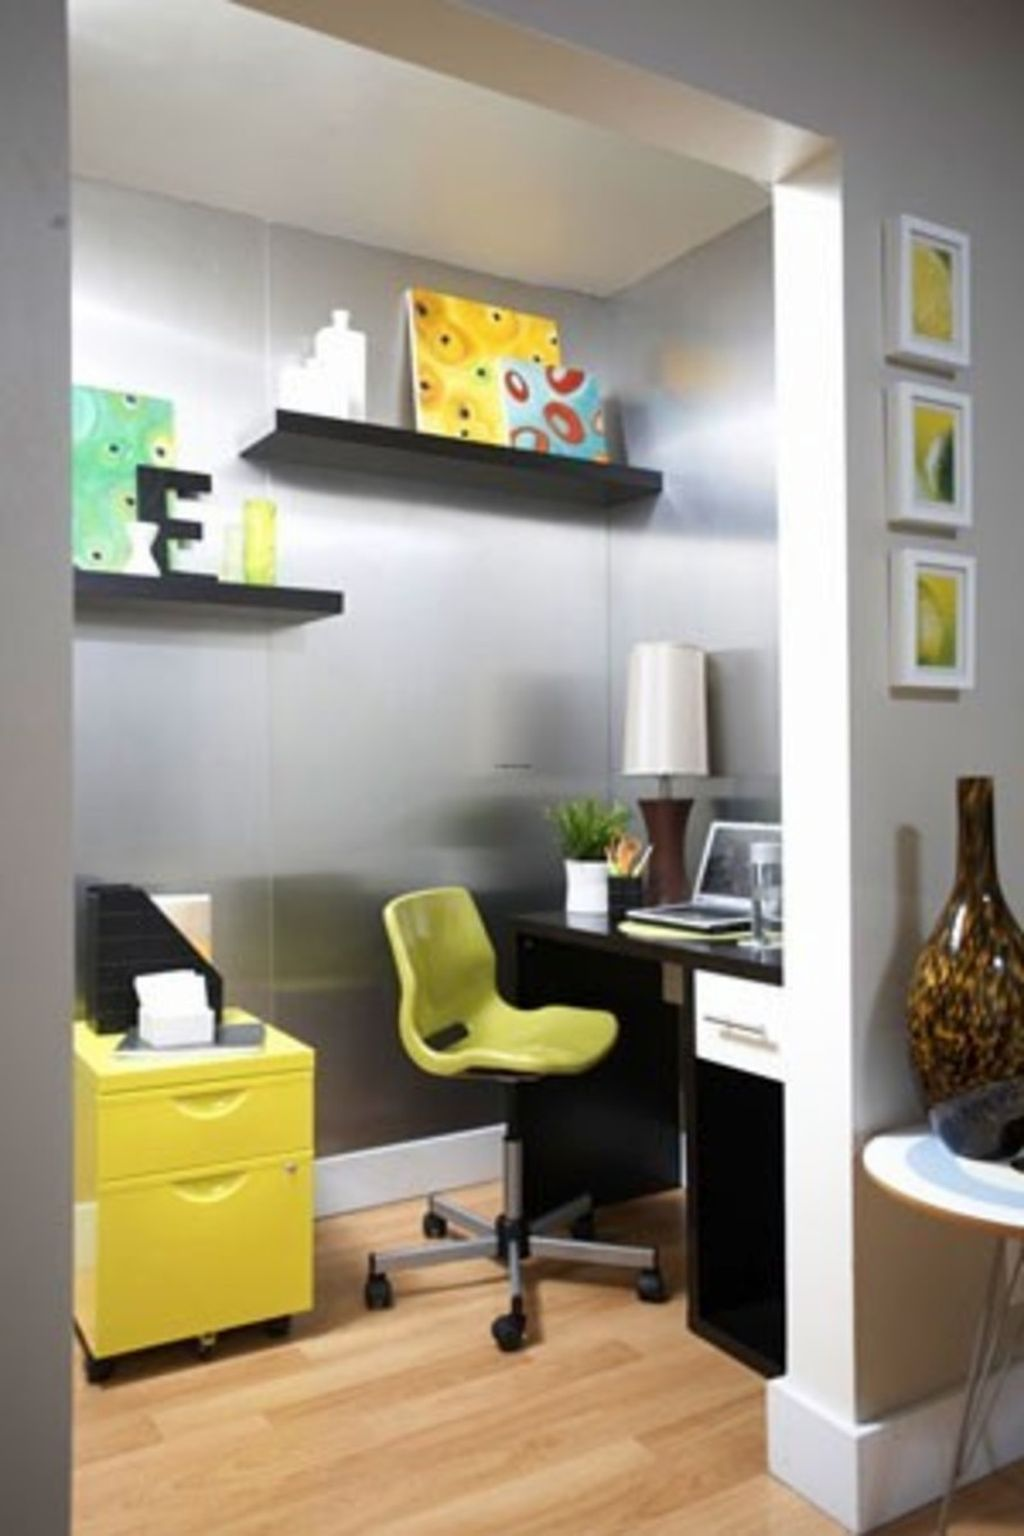 Superieur Gallery For Home Office Design Ideas For Small Spaces: